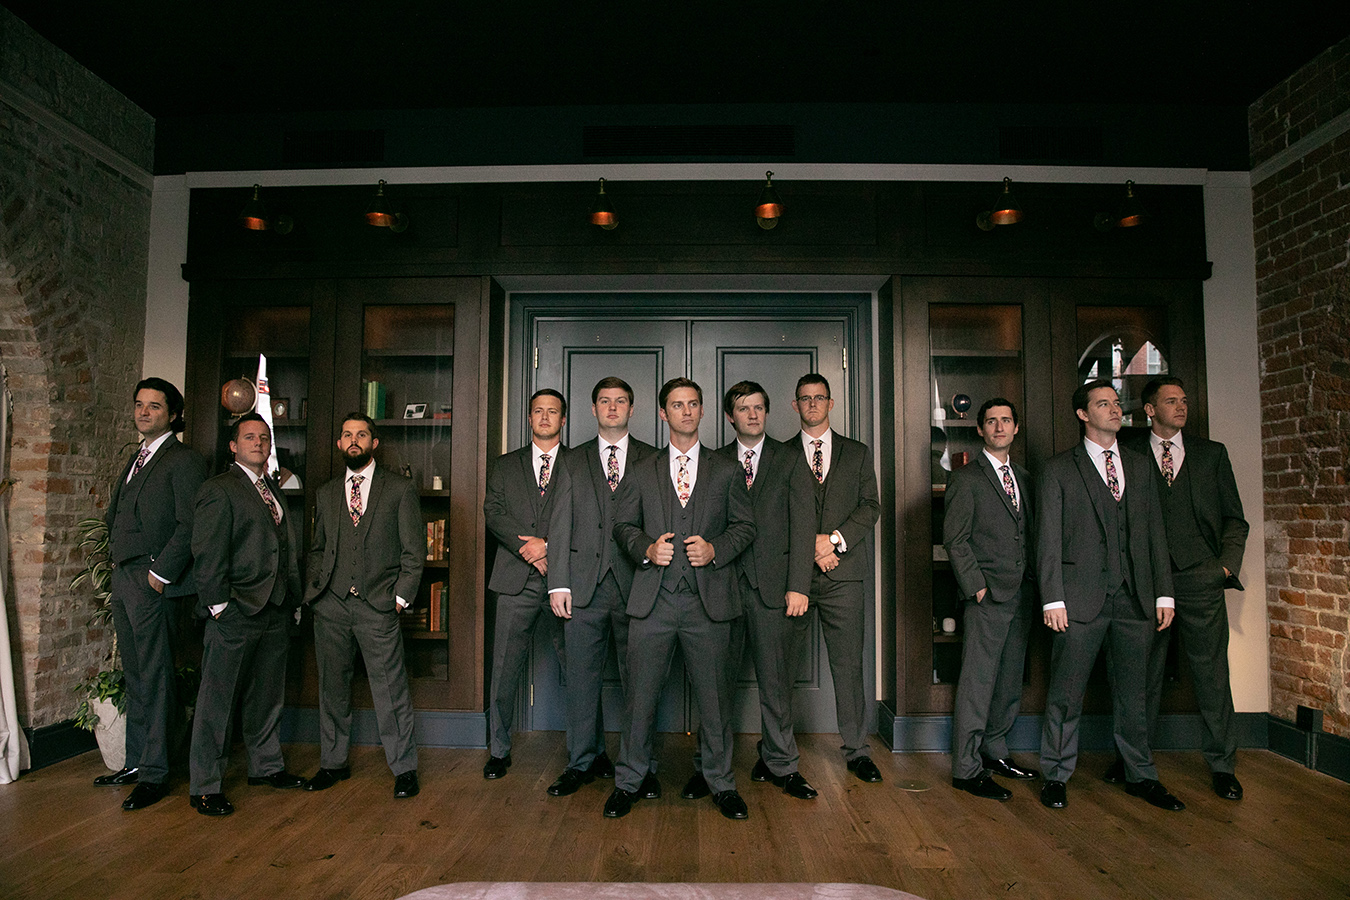 Travis and his groomsmen wore Michael Kors suits from Al's Formal Wear.